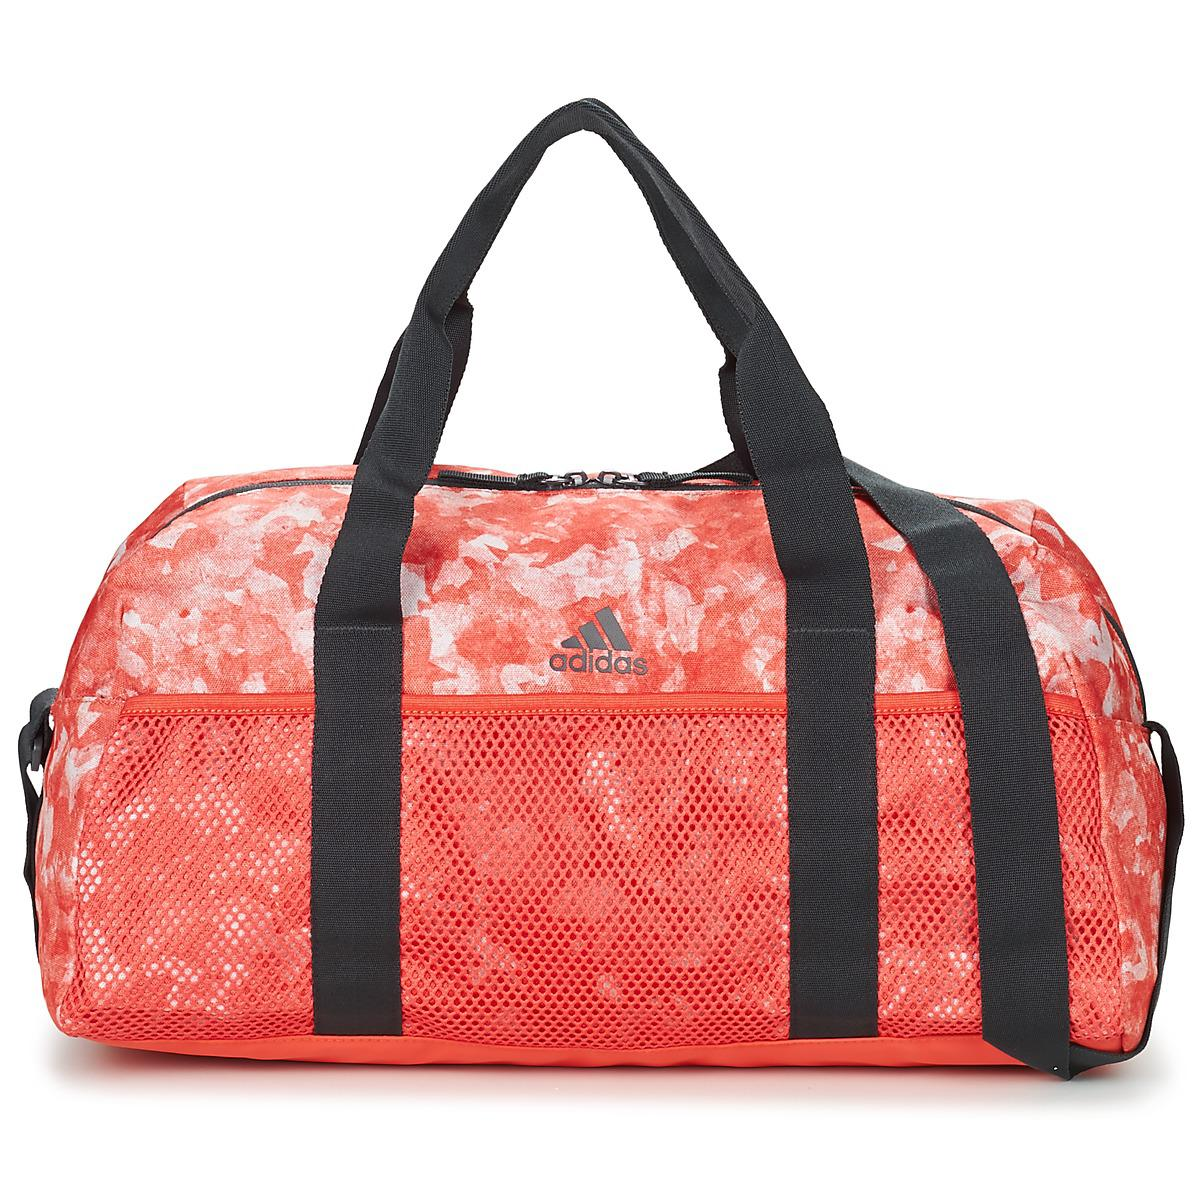 adidas Training Duffle Small Women s Sports Bag In Red in Red for ... b4f6427b8